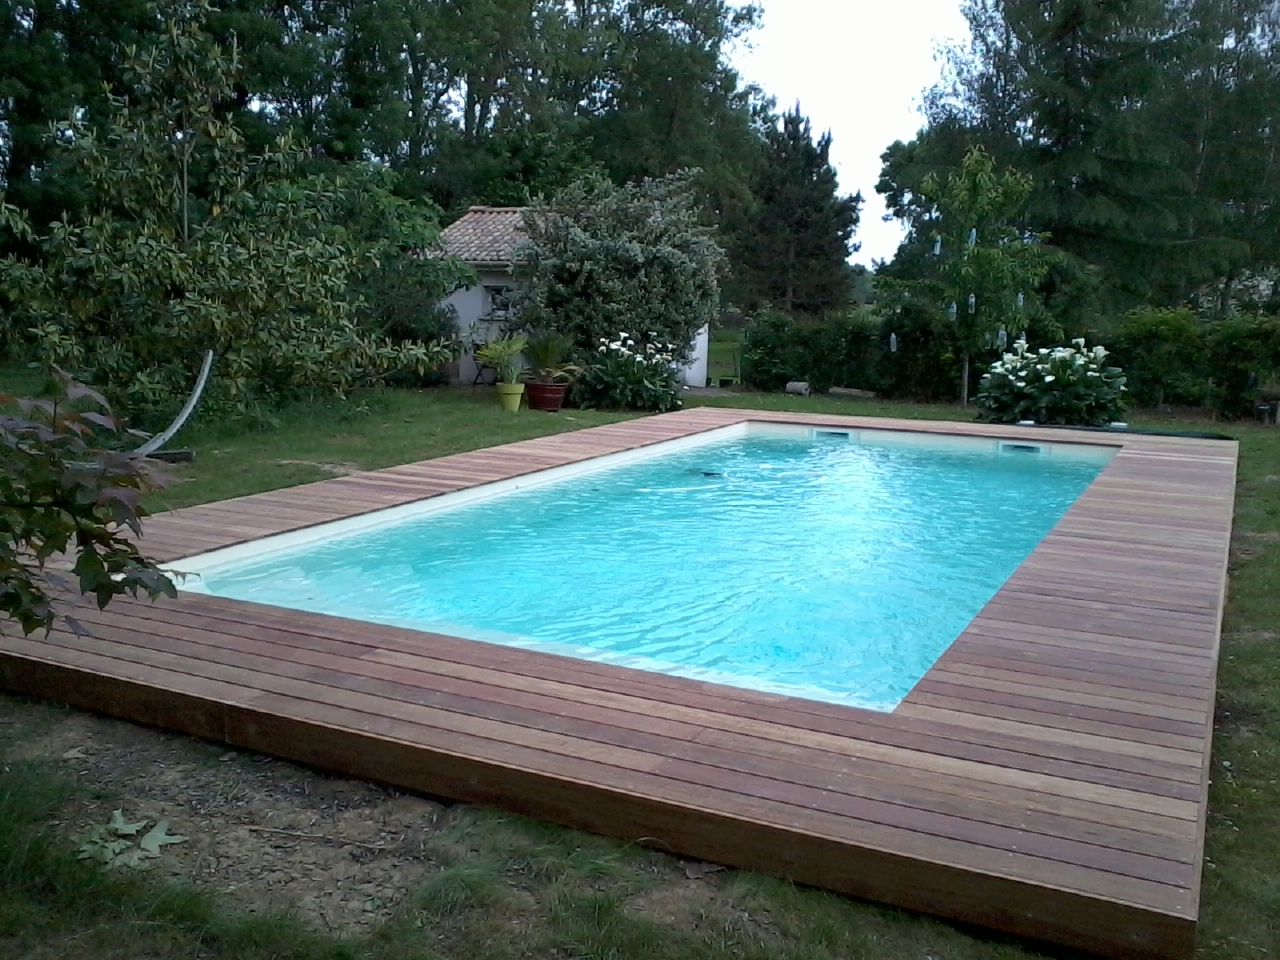 Piscine en solde destockage piscine bois hors sol for Destockage piscine bois